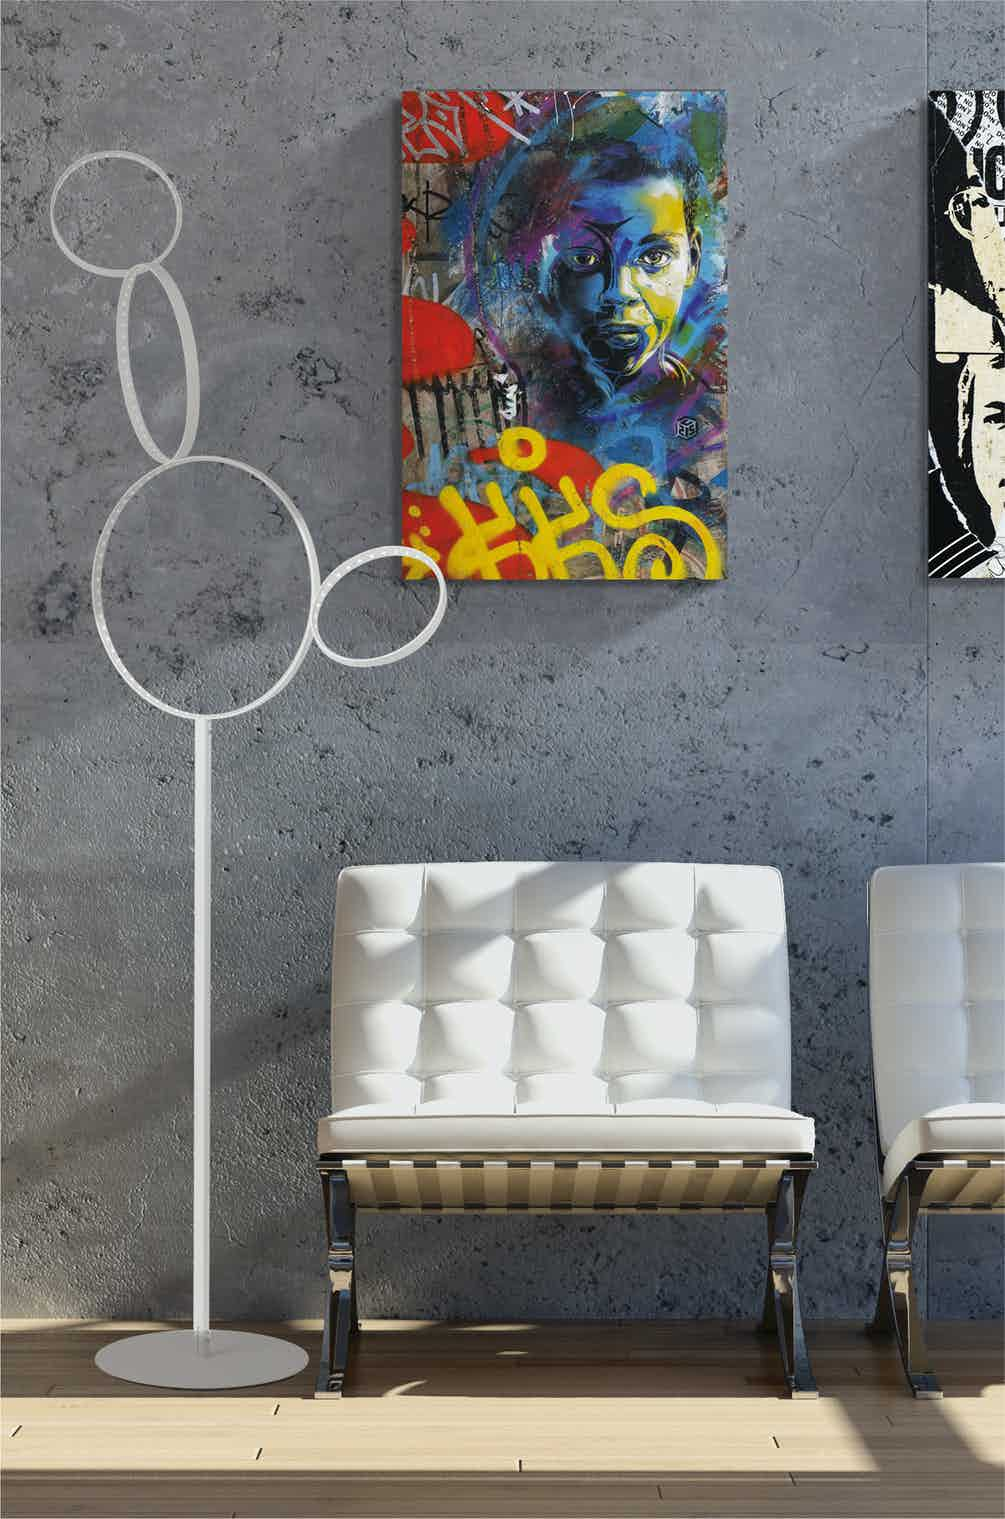 Le-deun-luminaires-pico-5-floor-lamp-painting-haute-living